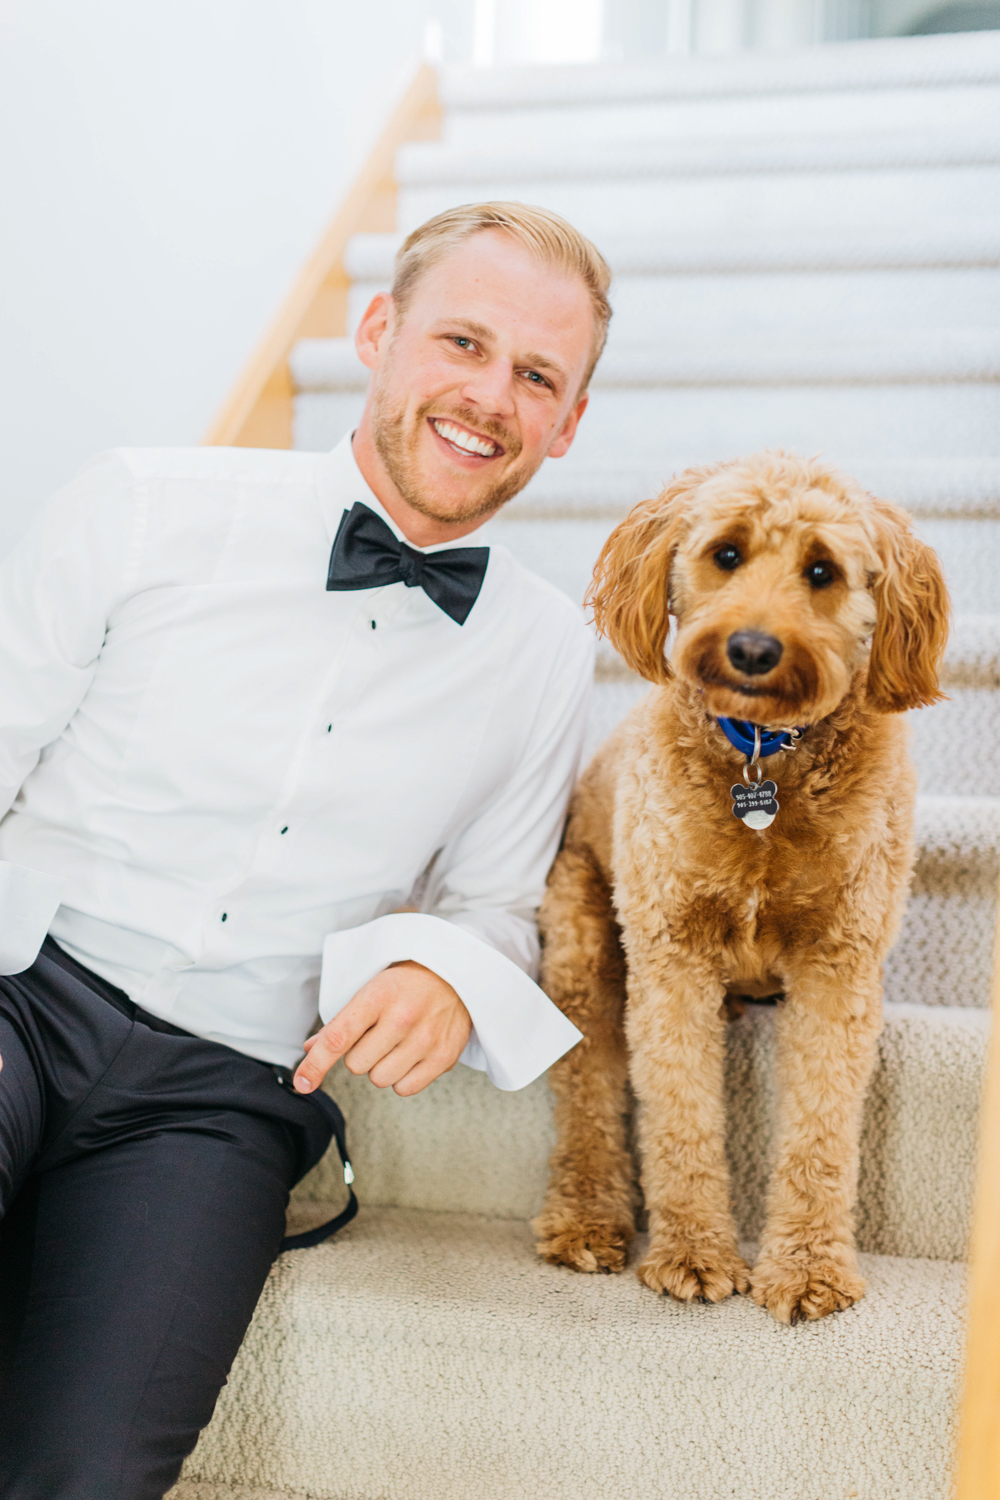 Groom smiling with his puppy on wedding day in Hamilton